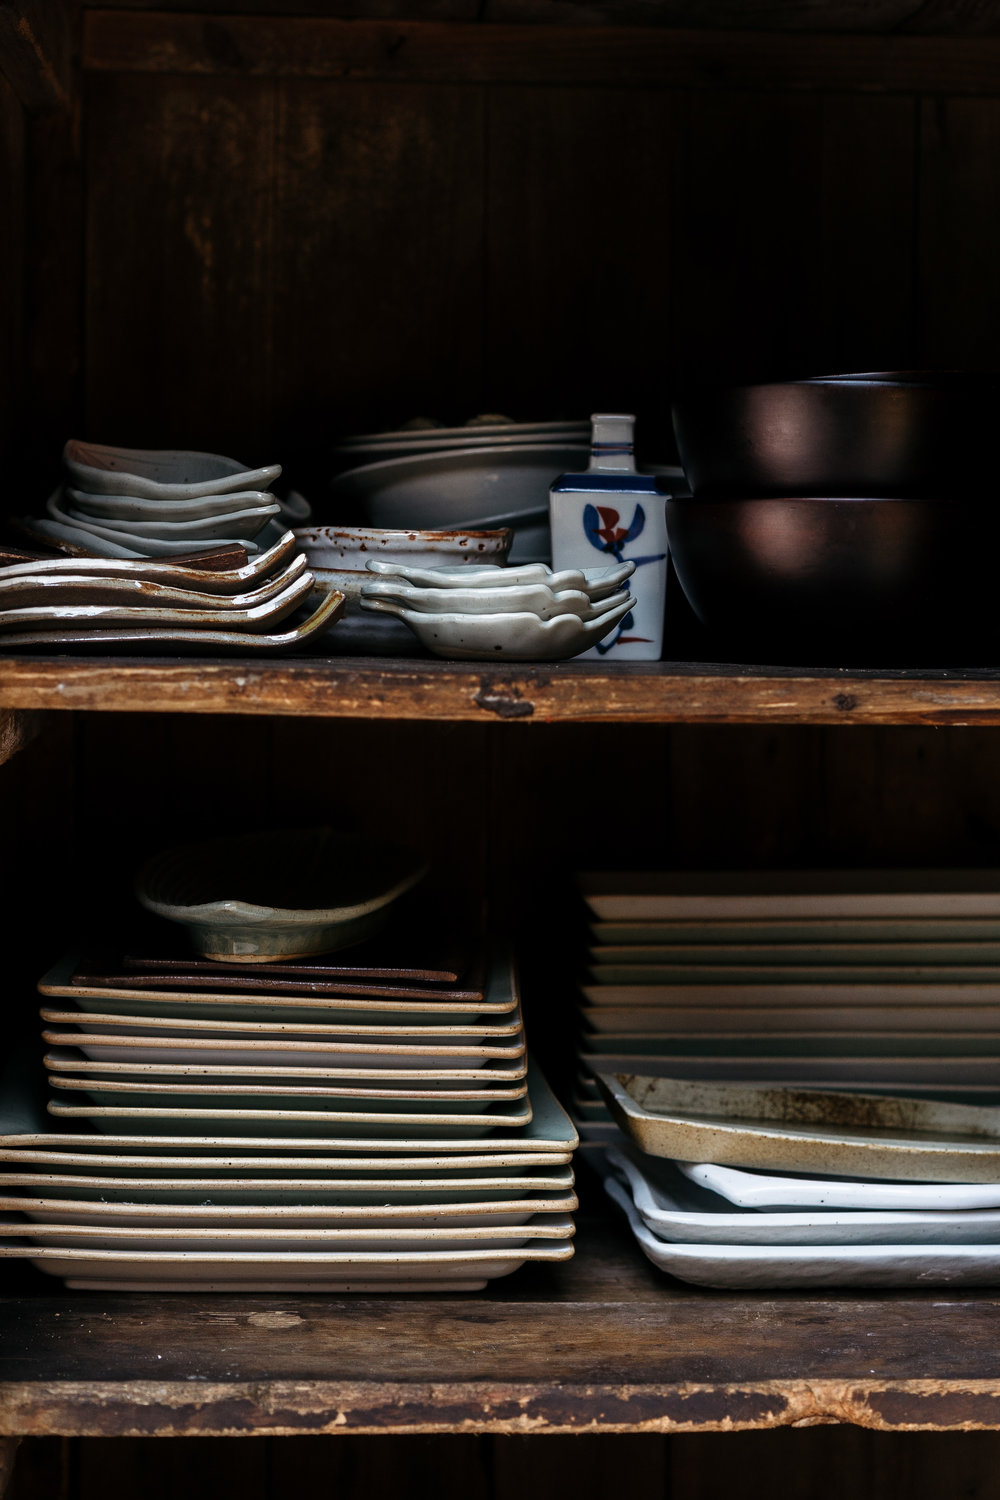 stacked dishes (vert).jpg